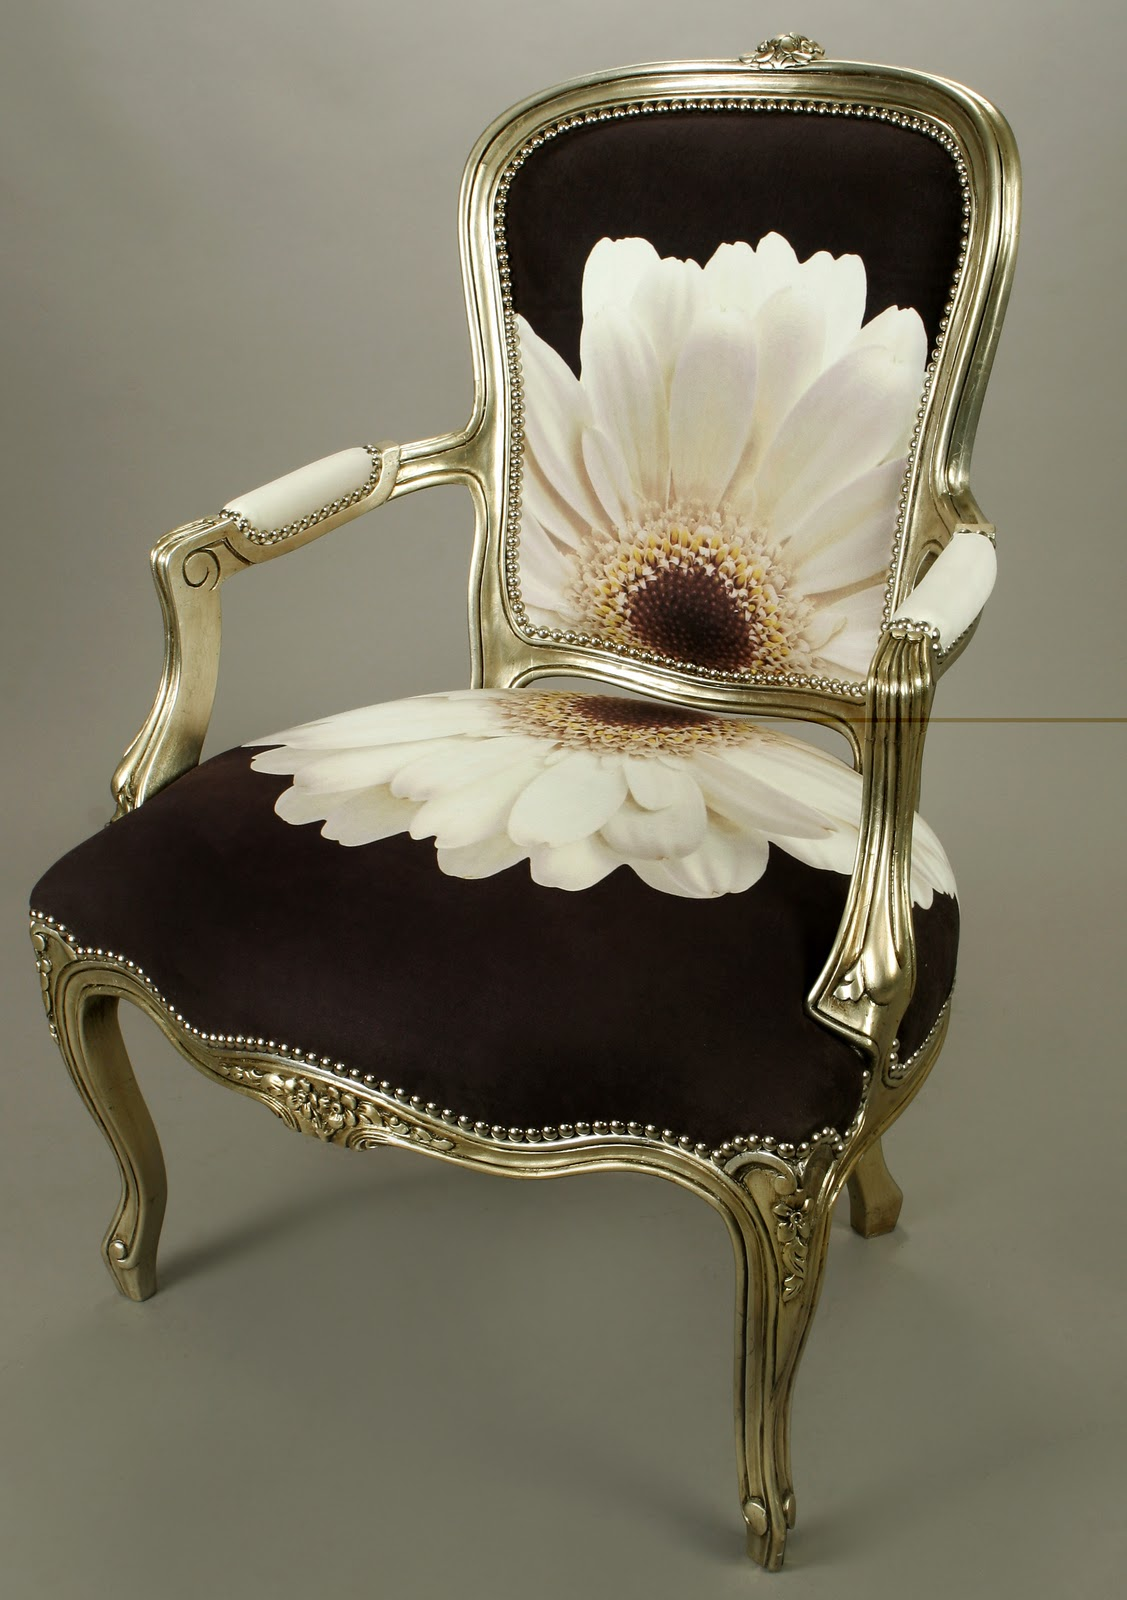 Floral Chairs Allan Knight Blog Opuzen Opulent 43 Zen